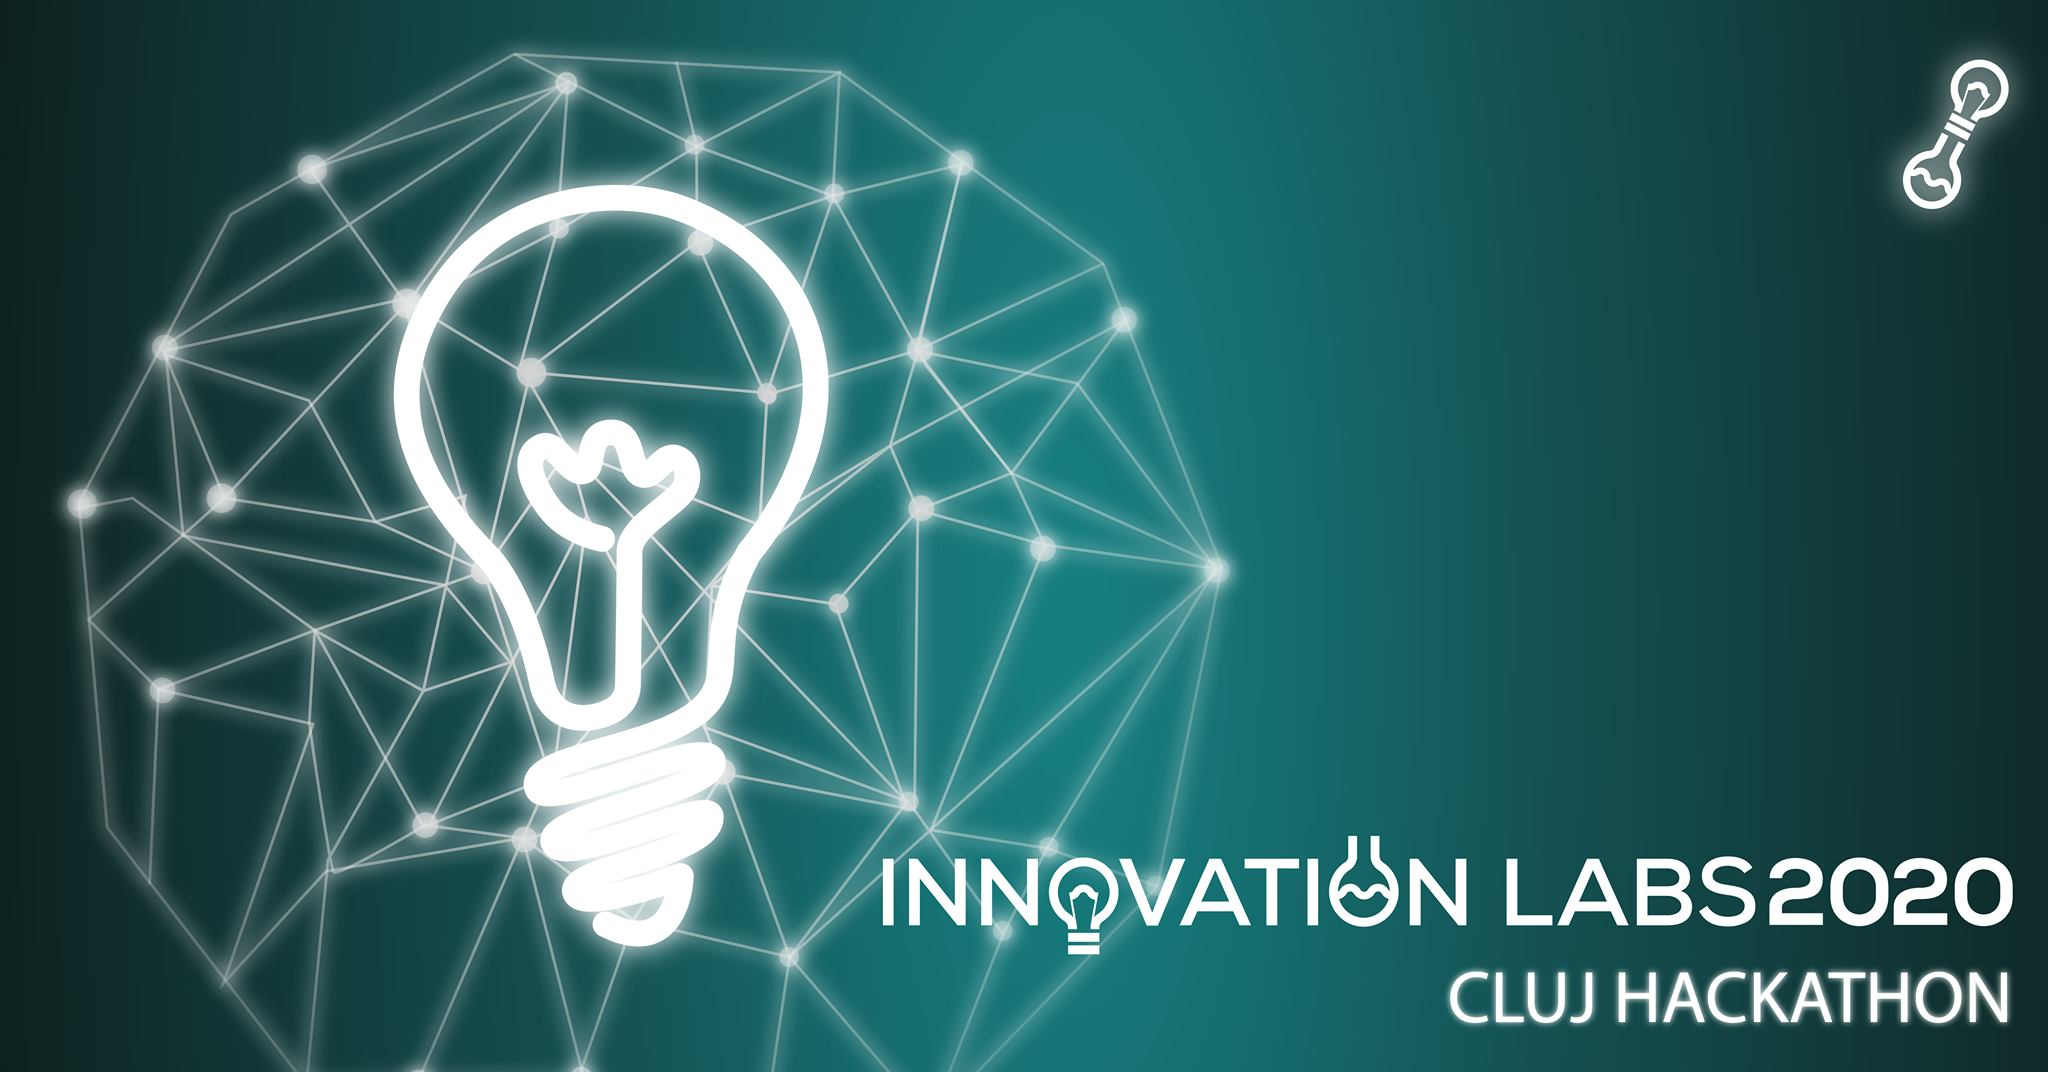 Innovation Labs 2020 Cluj Hackathon